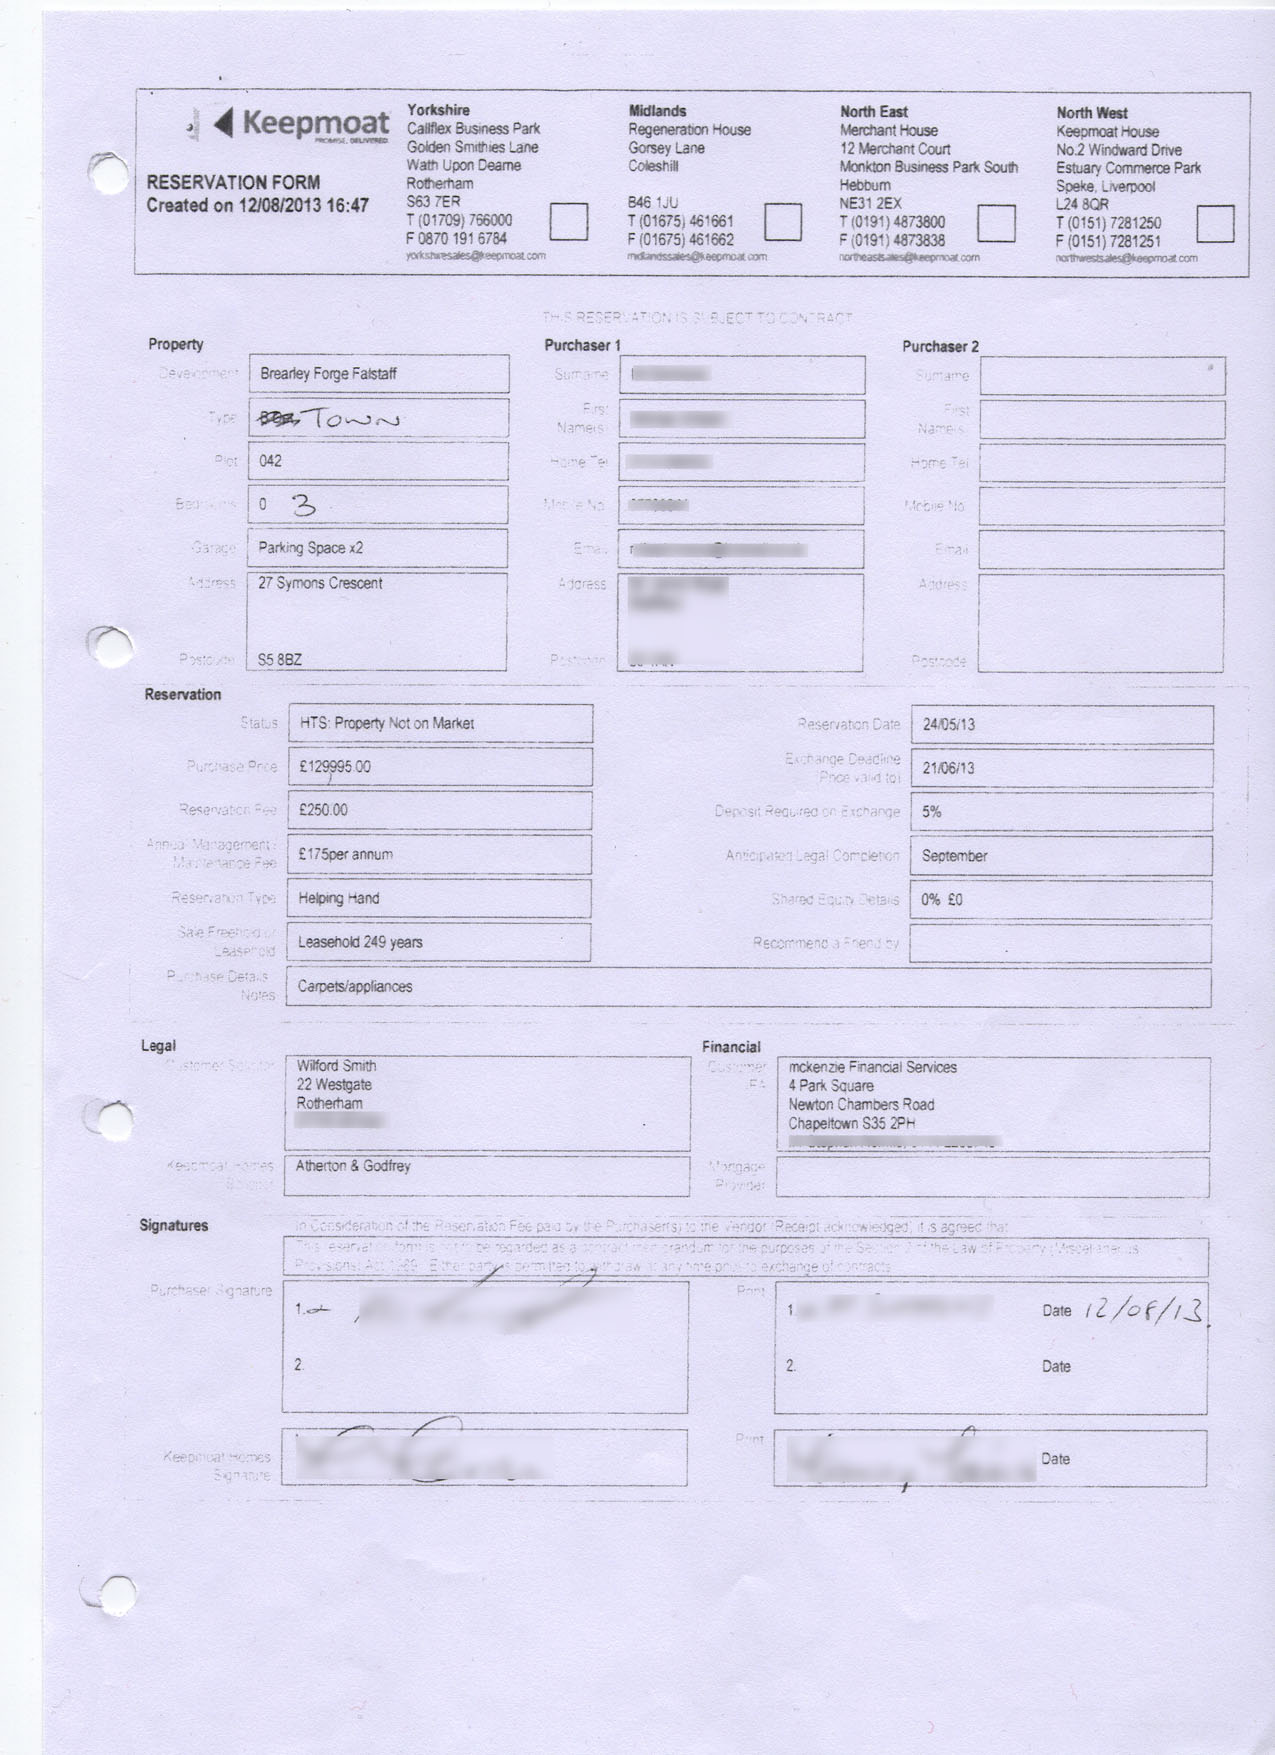 New Reservation Form Created On 12/08/2013 At Our Request.